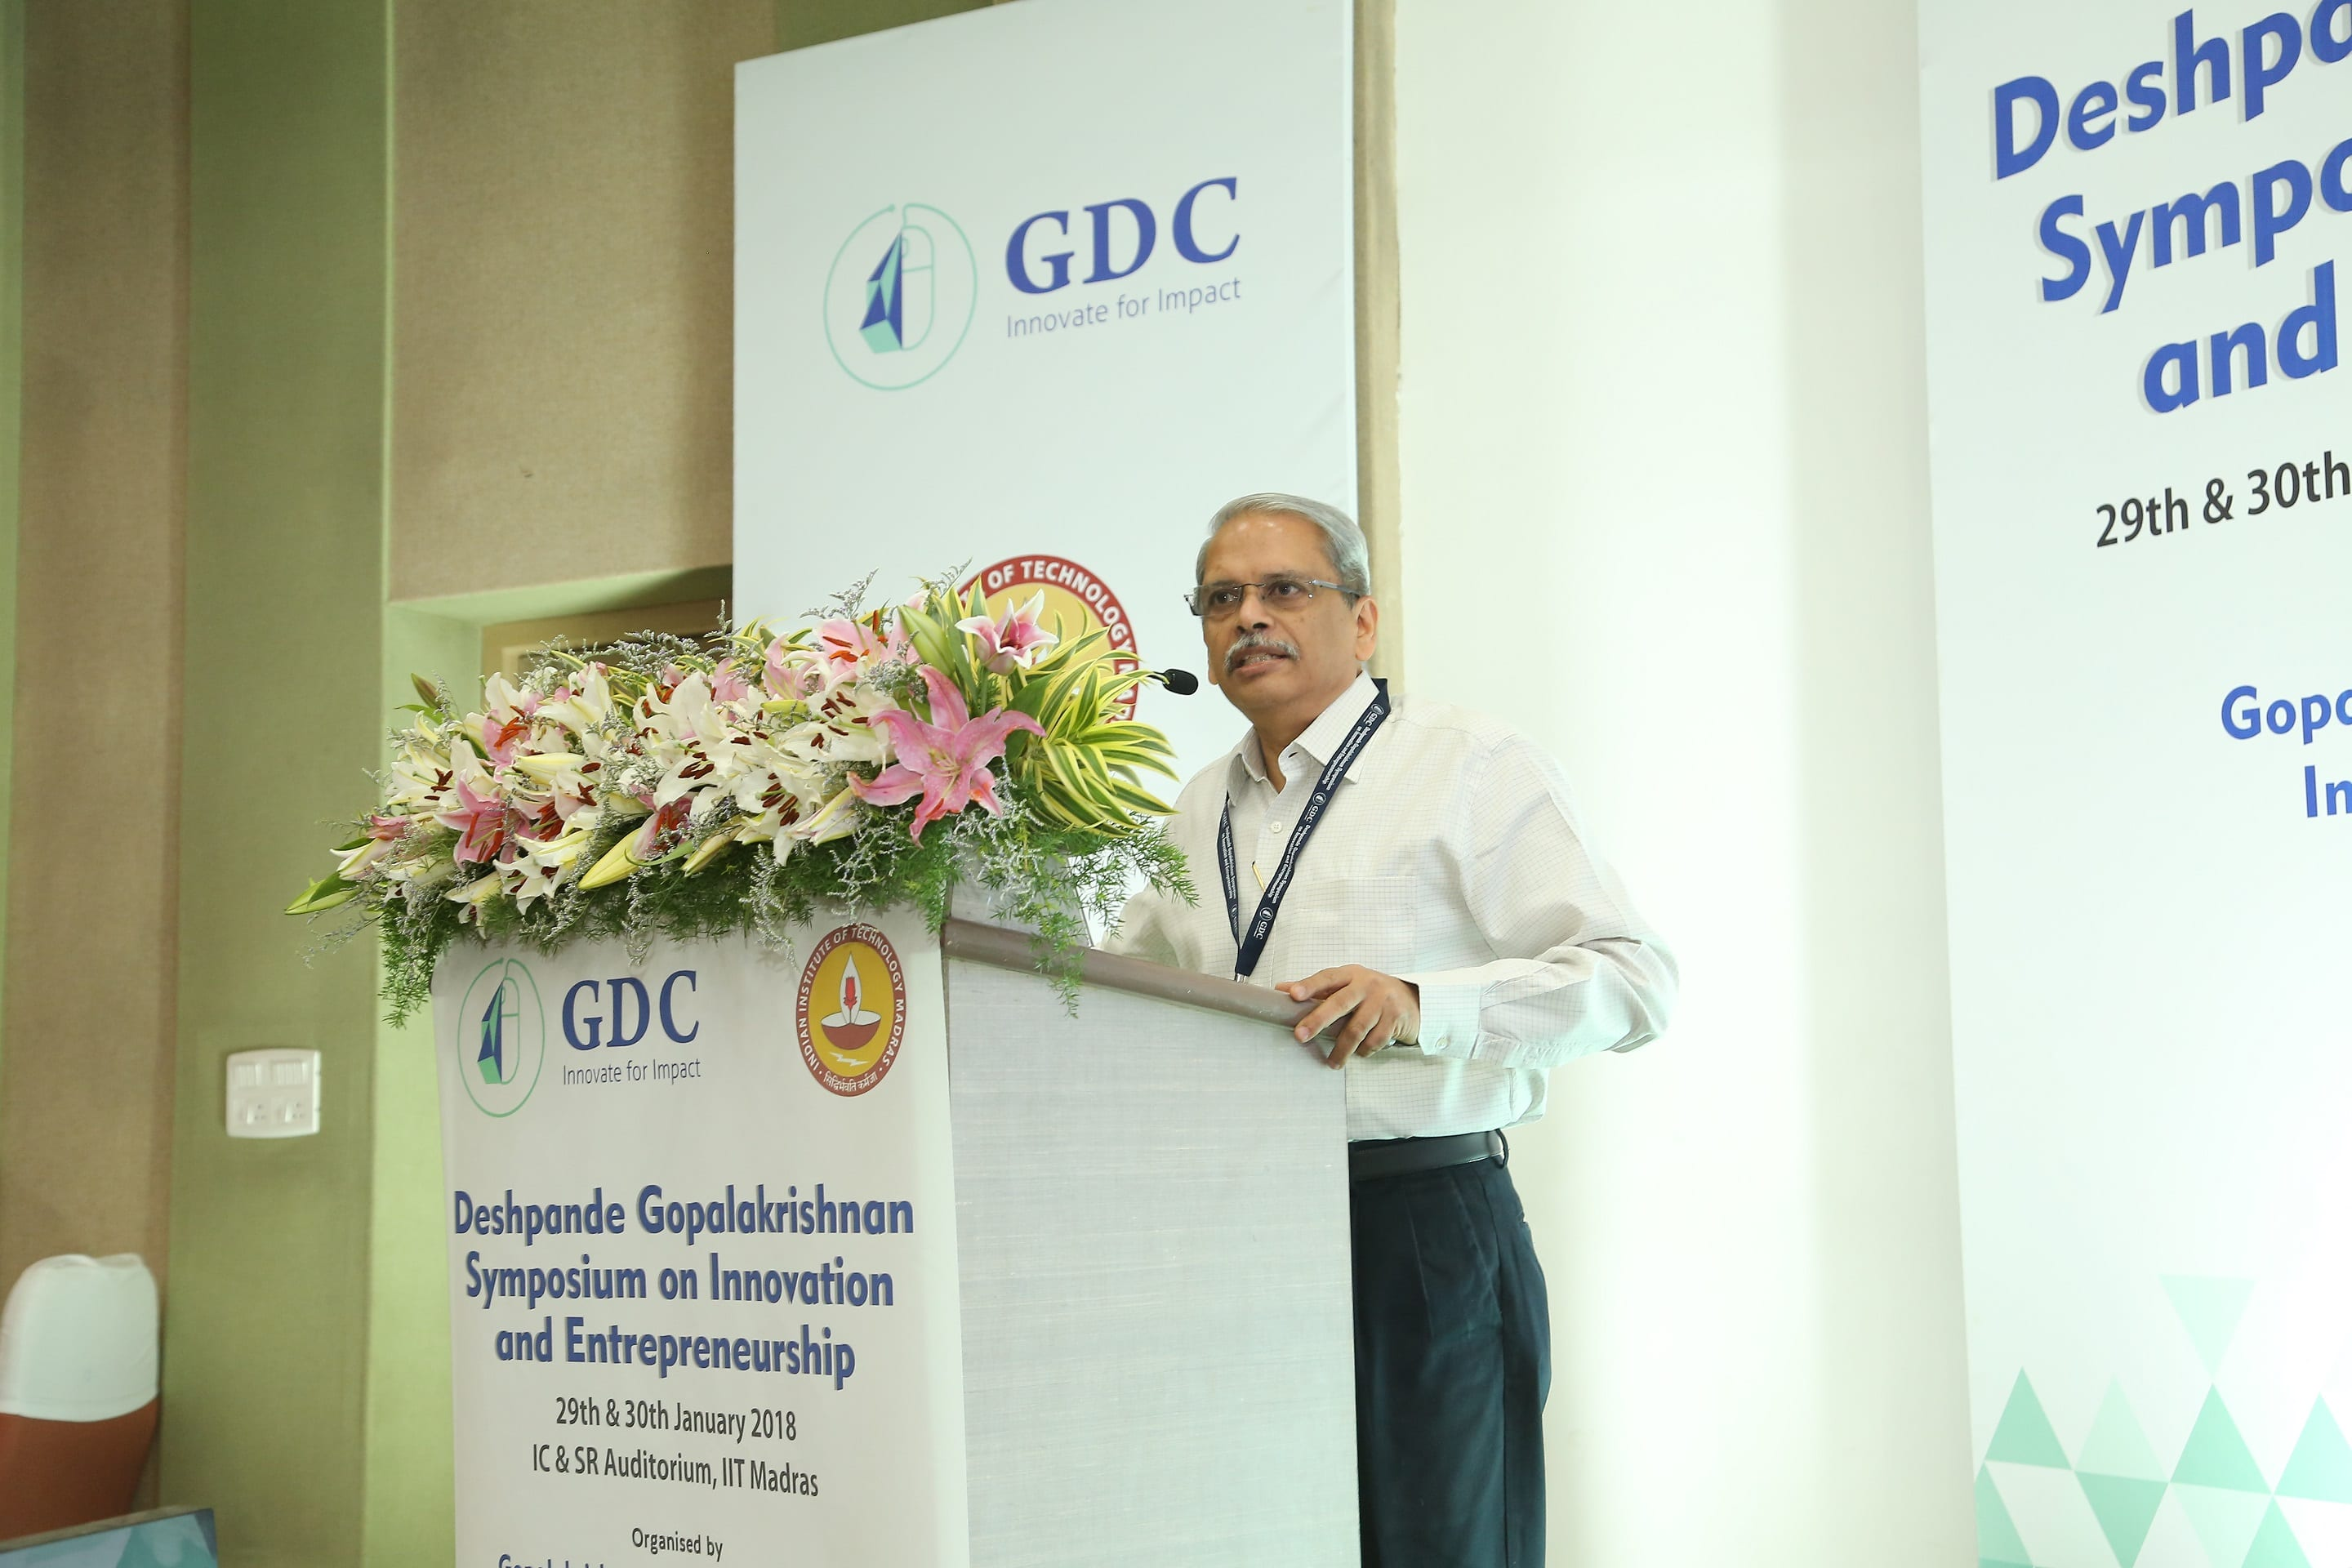 IIT Madras hosts first Deshpande-Gopalakrishnan Symposium on Innovation and Entrepreneurship